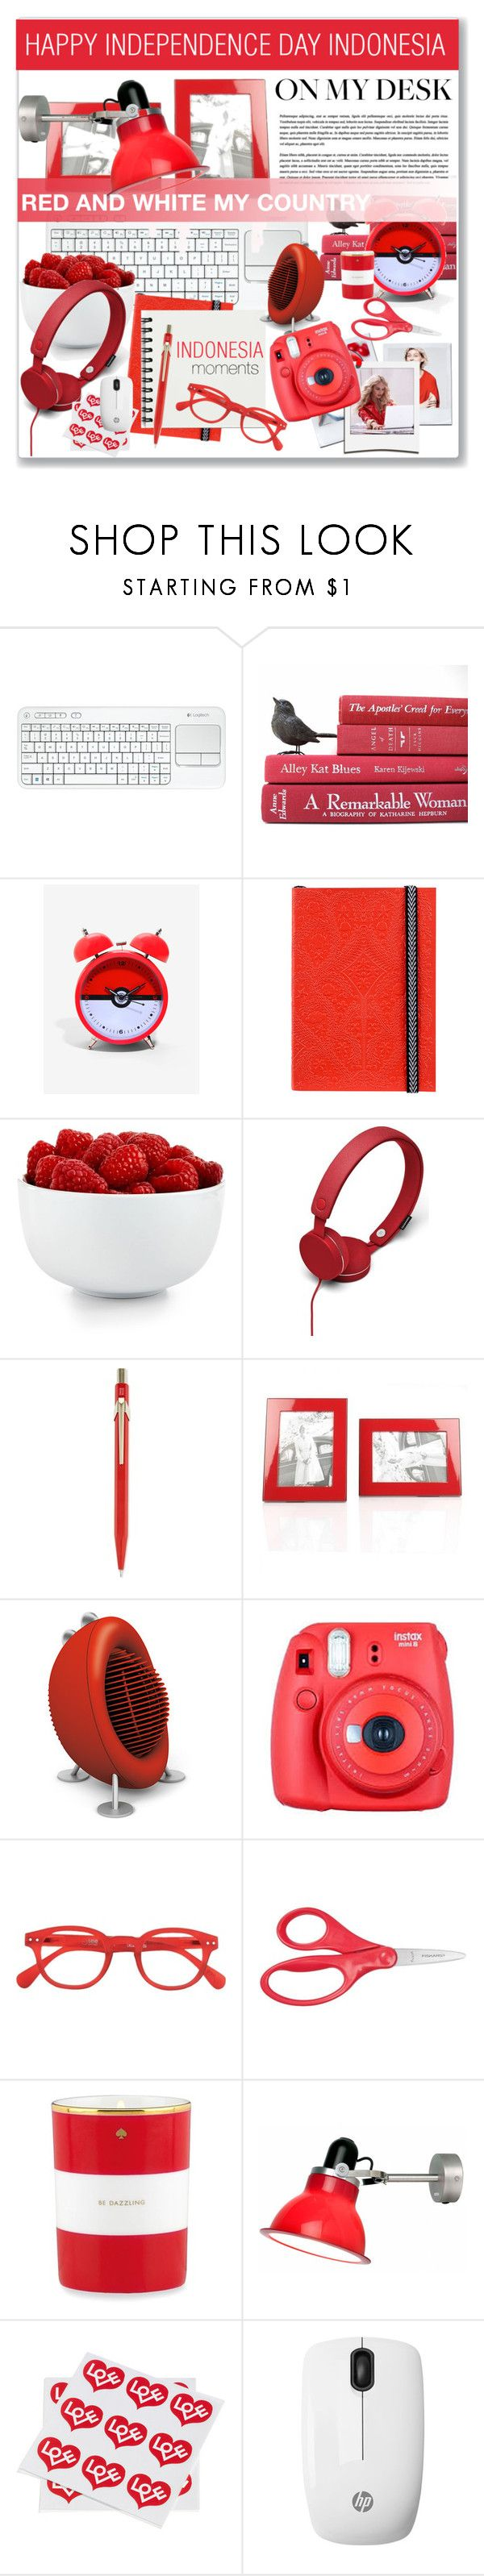 """""""HAPPY INDEPENDENCE DAY INDONESIA"""" by nanawidia ❤ liked on Polyvore featuring interior, interiors, interior design, home, home decor, interior decorating, Logitech, Christian Lacroix, The Cellar and Urbanears"""